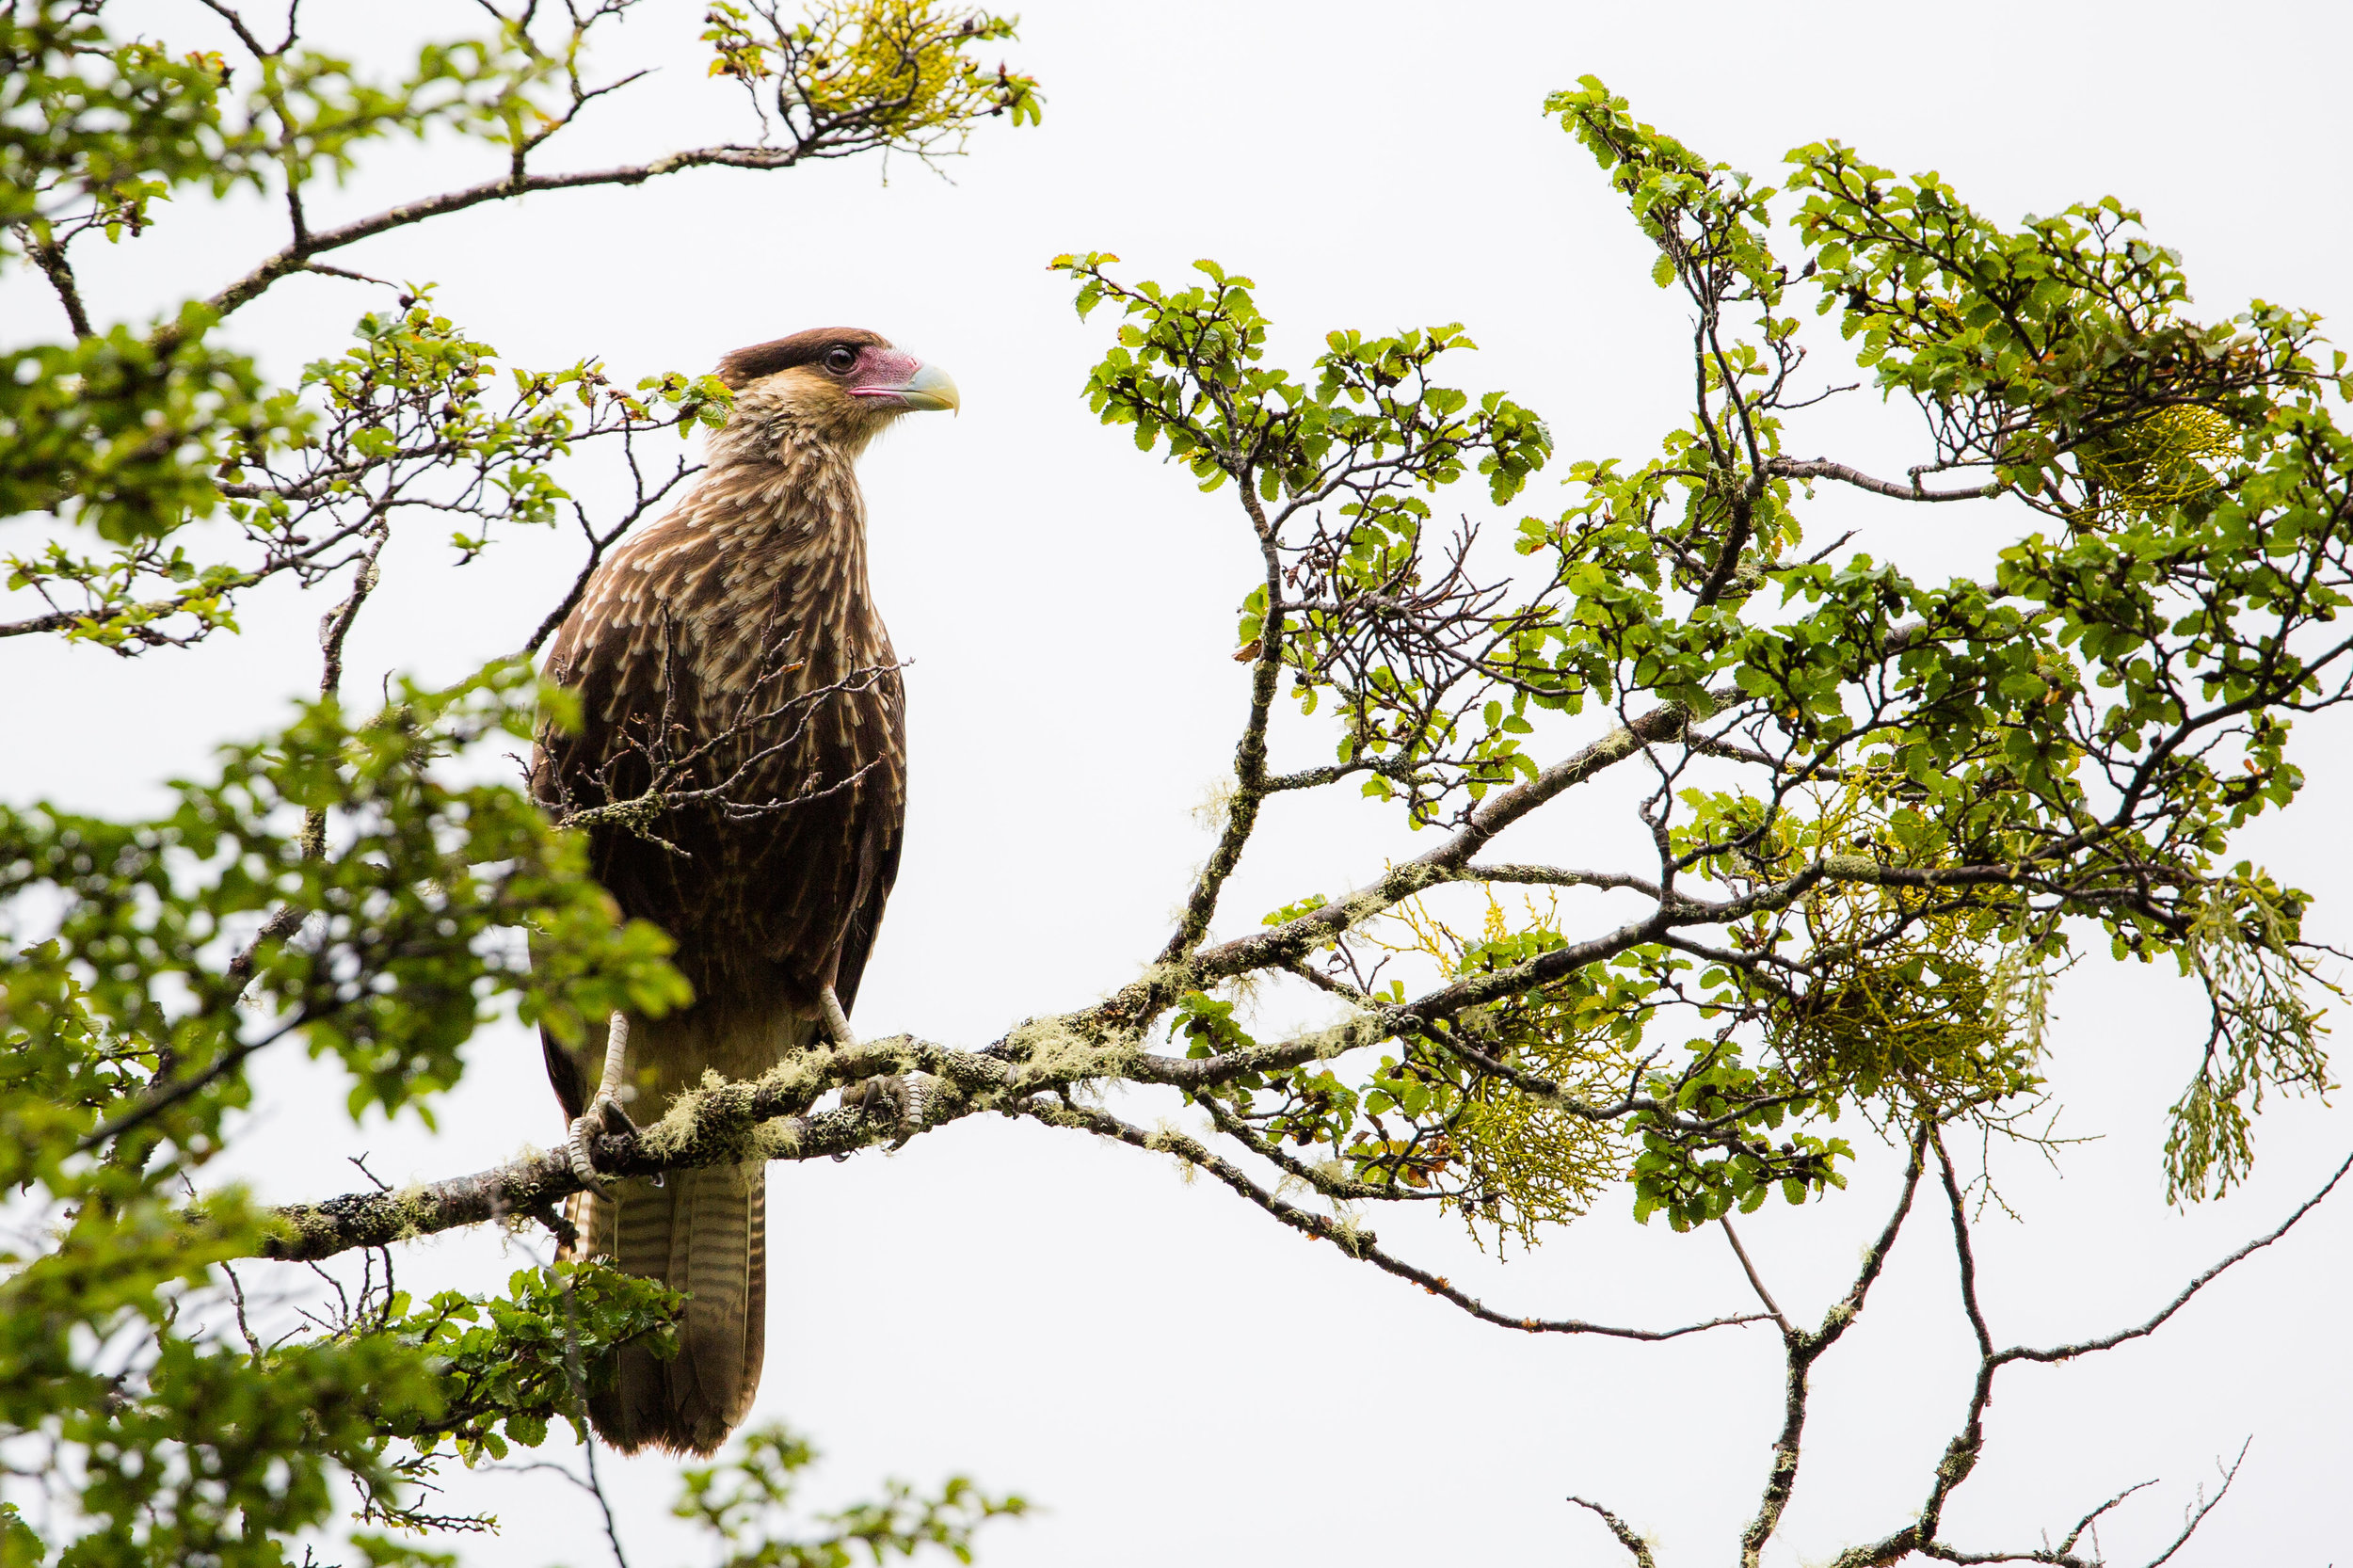 A southern crested caracara greeted us almost at the entrance in the park.